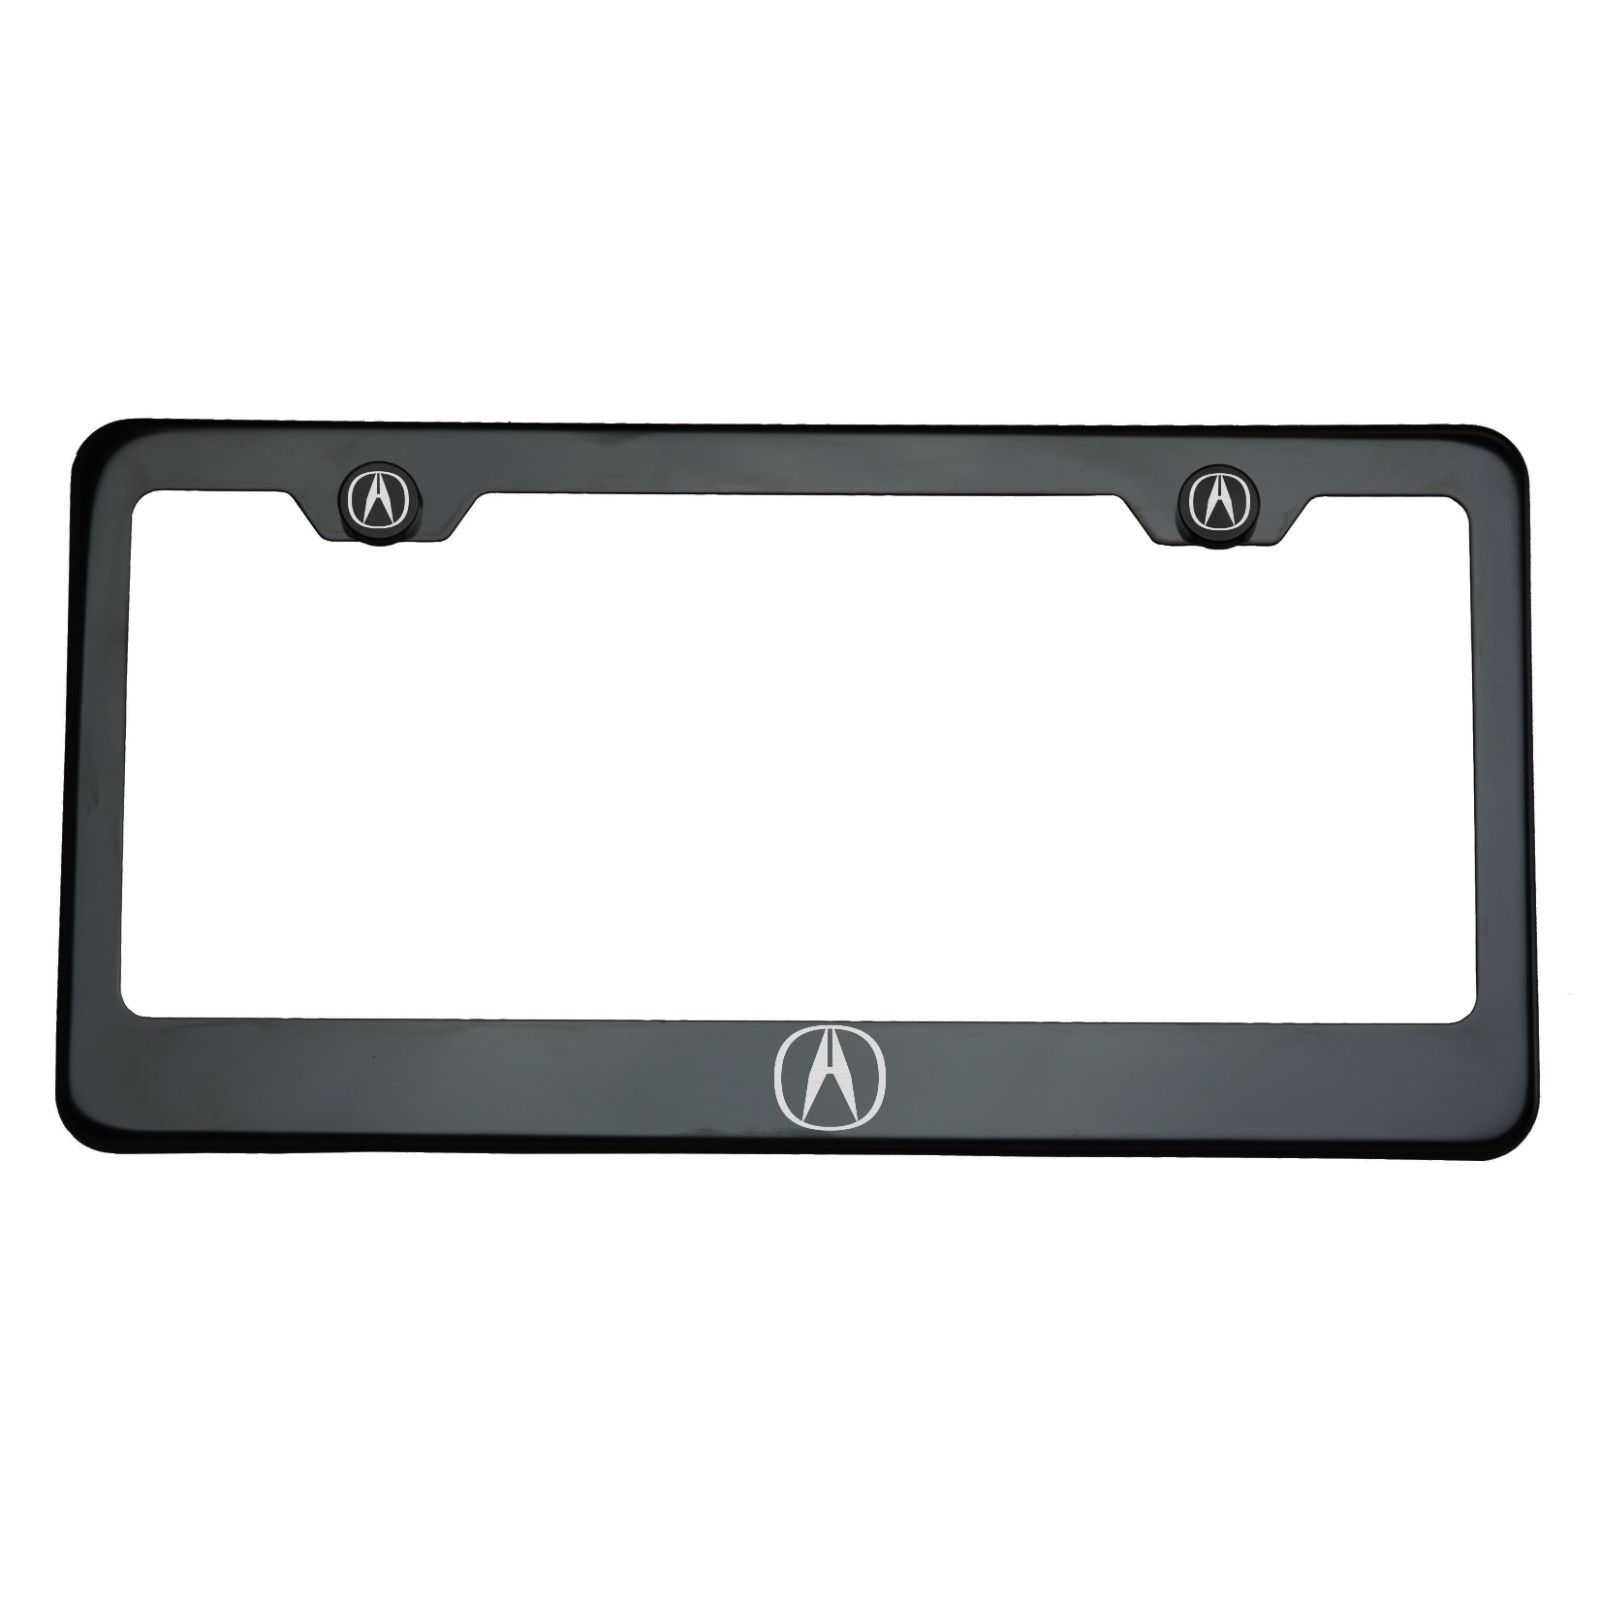 Acura Black License Plate Frame